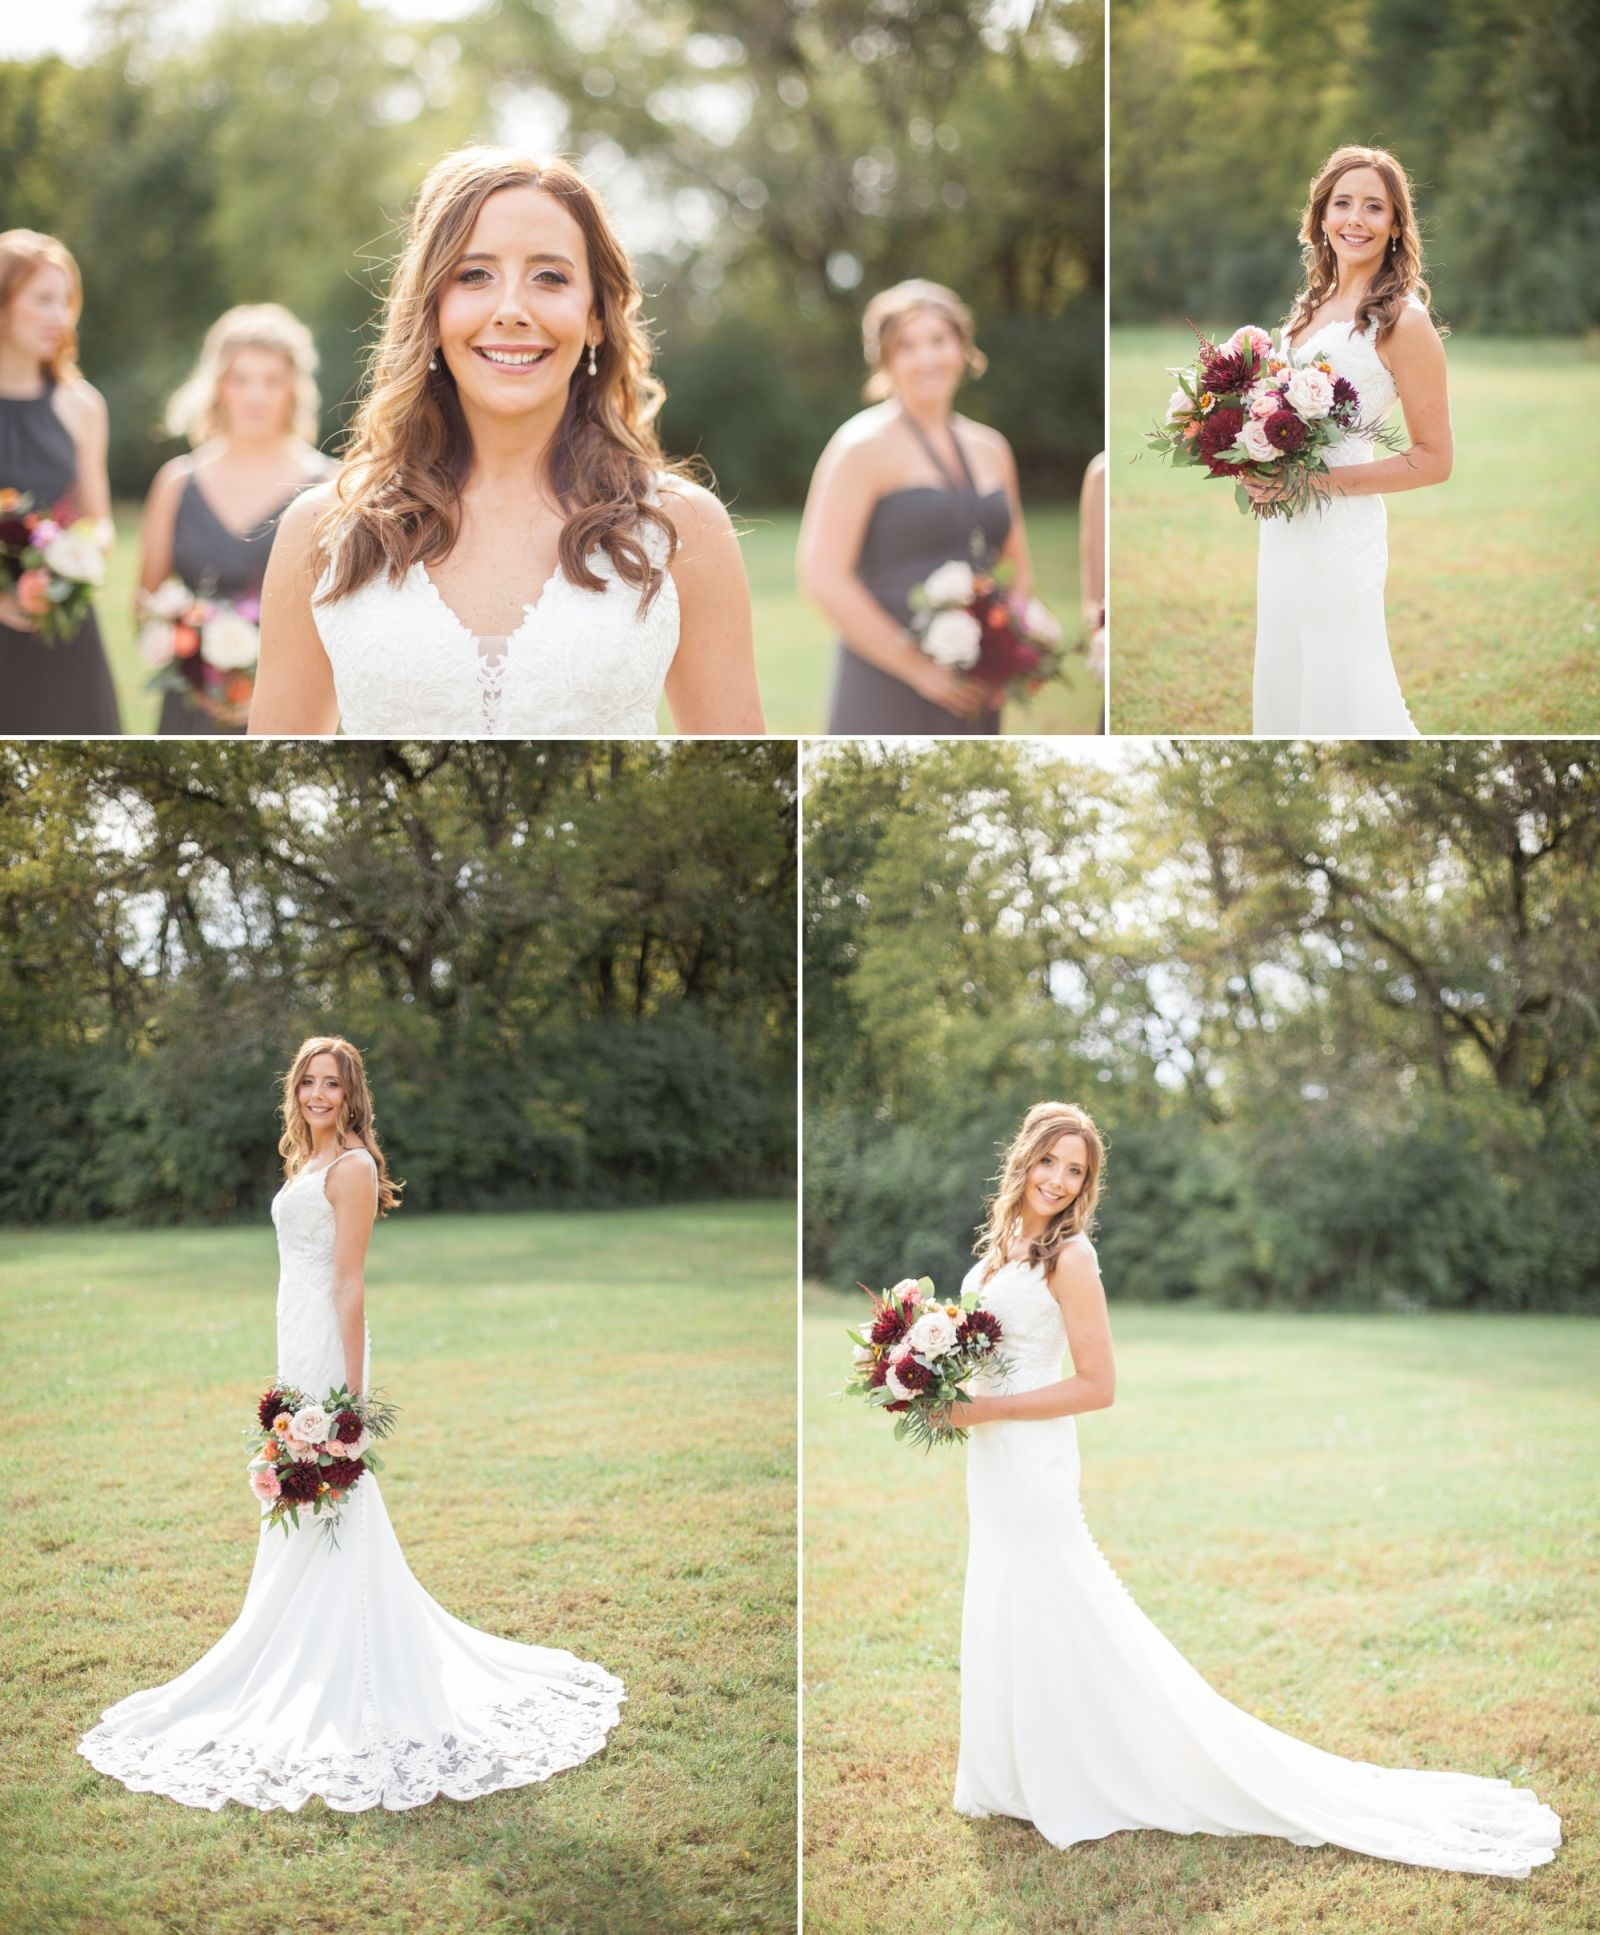 Wedding Hairstyle Nashville: Green Door Gourmet Wedding In Nashville, TN...Fall Bride